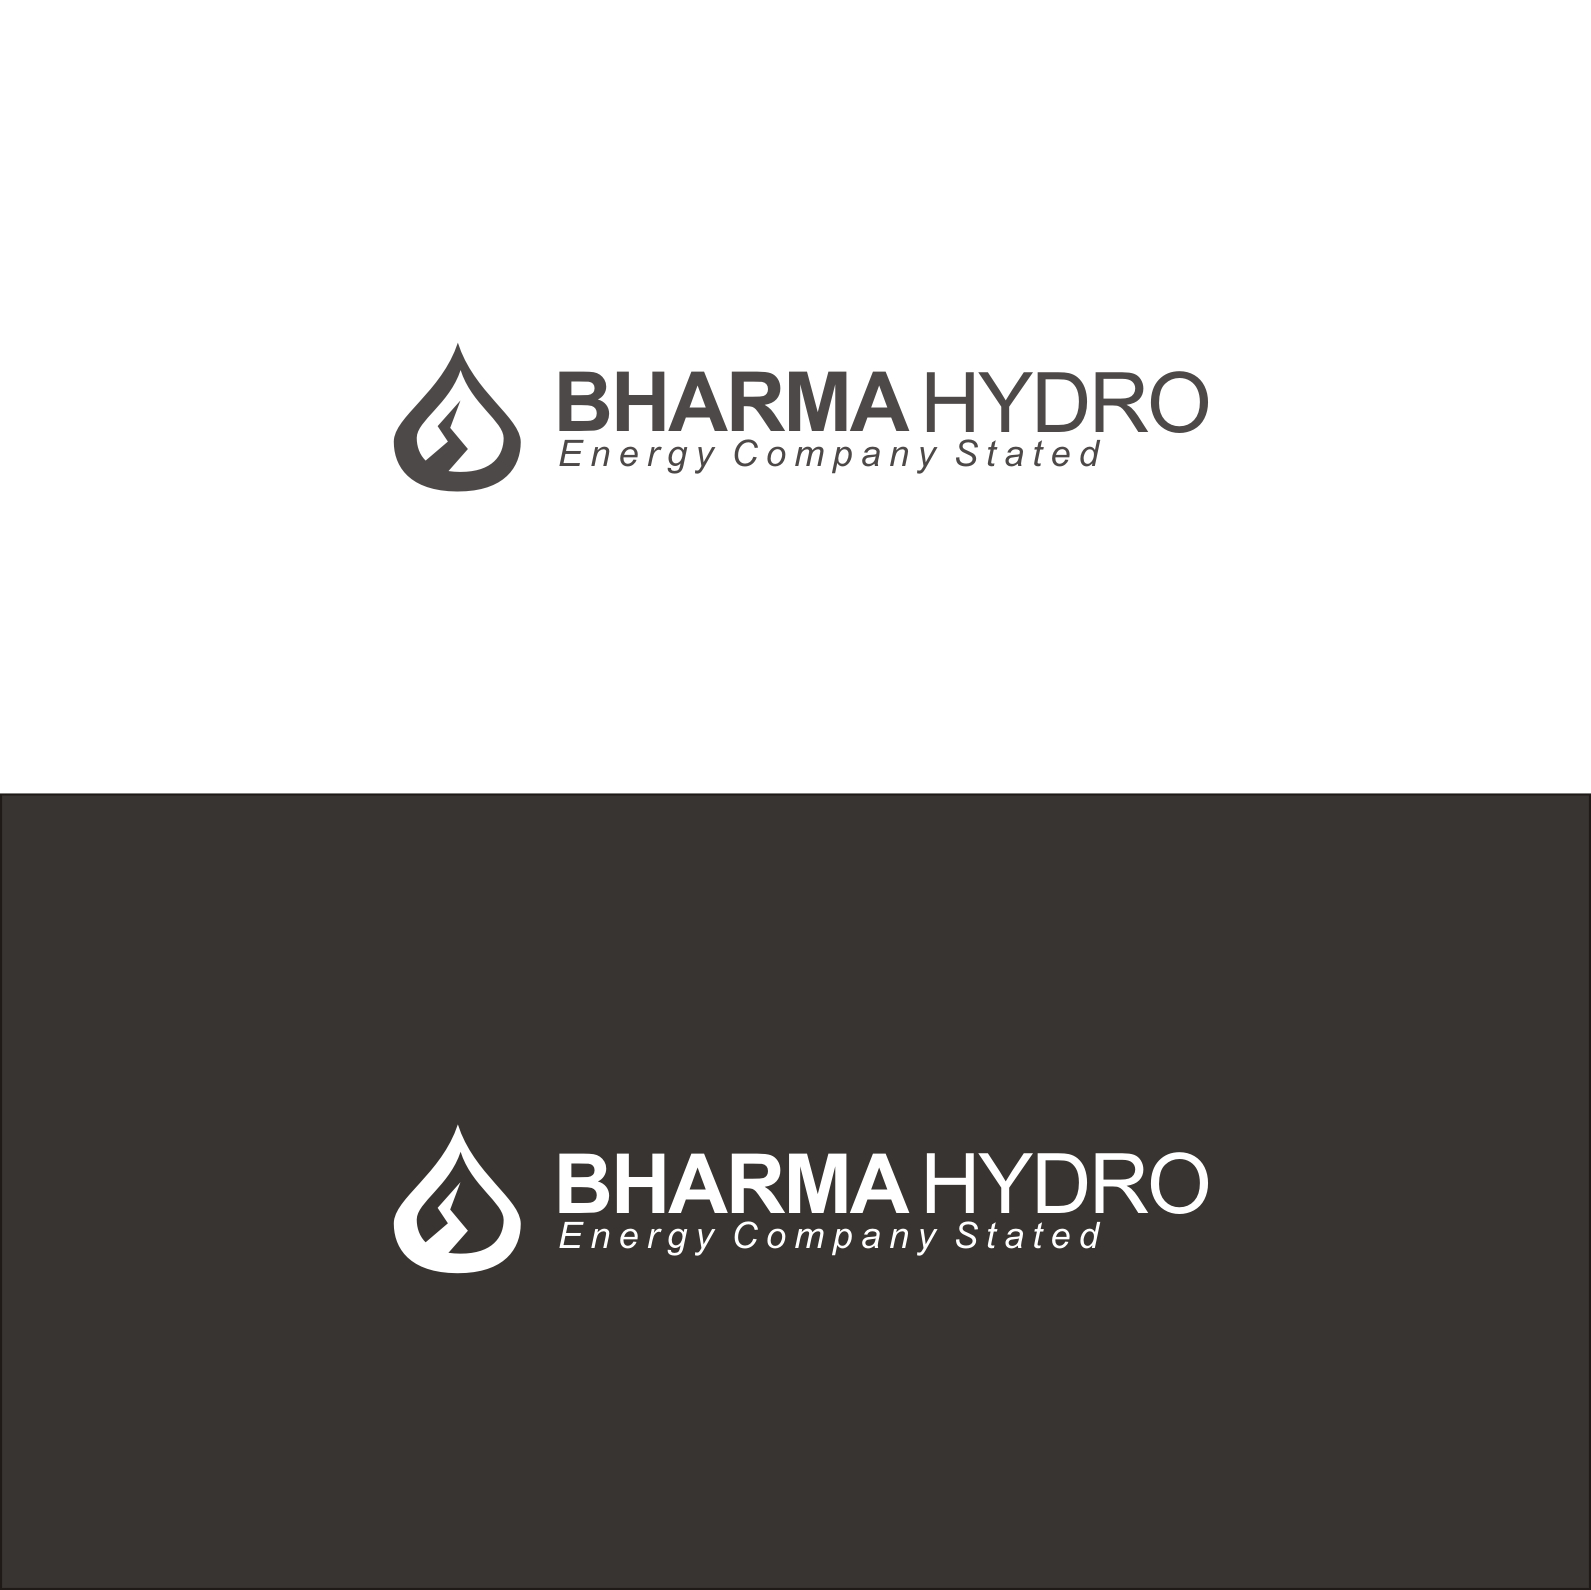 Logo Design by Think - Entry No. 10 in the Logo Design Contest Creative Logo Design for Bharma Hydro.